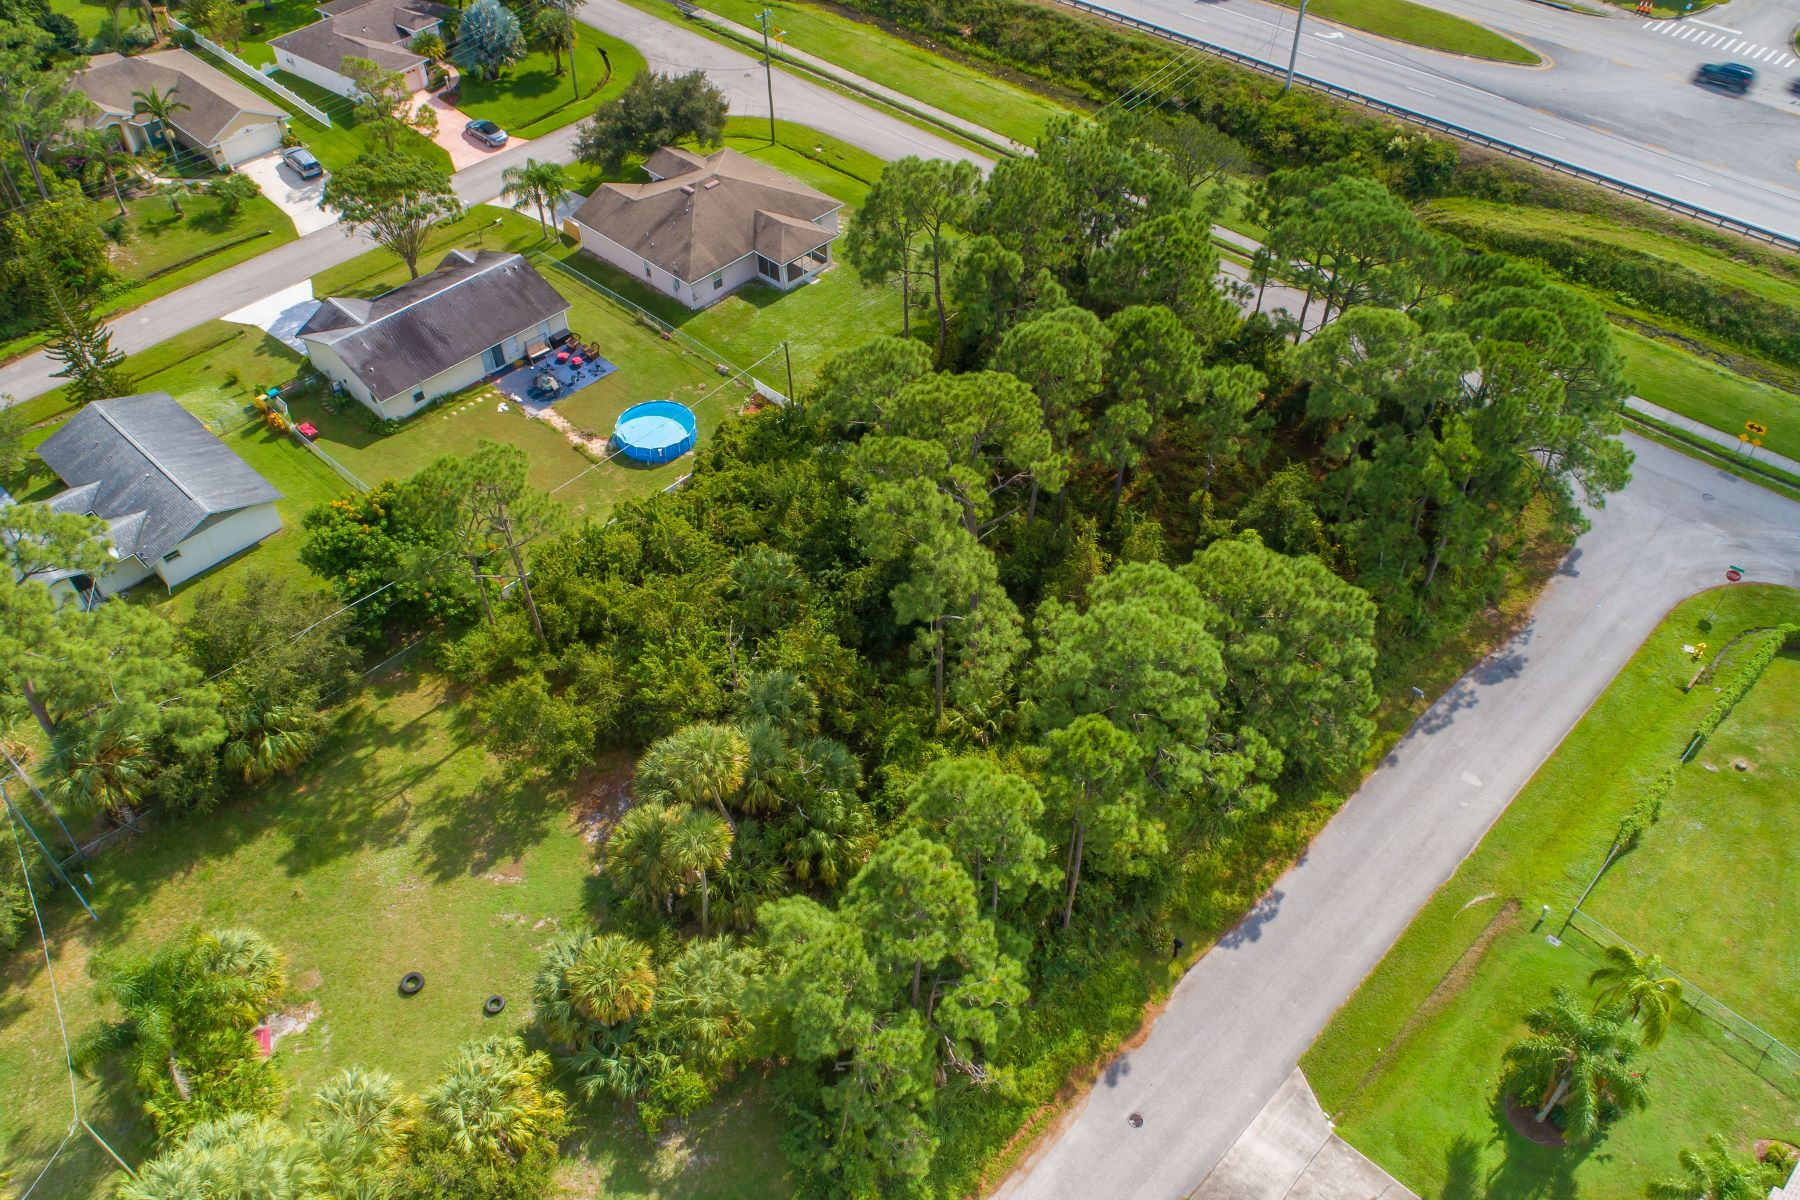 Land for Sale at Perfect Site to Build Your New Home! 123 Bonfire Avenue Ne NULL Palm Bay, Florida 32907 United States